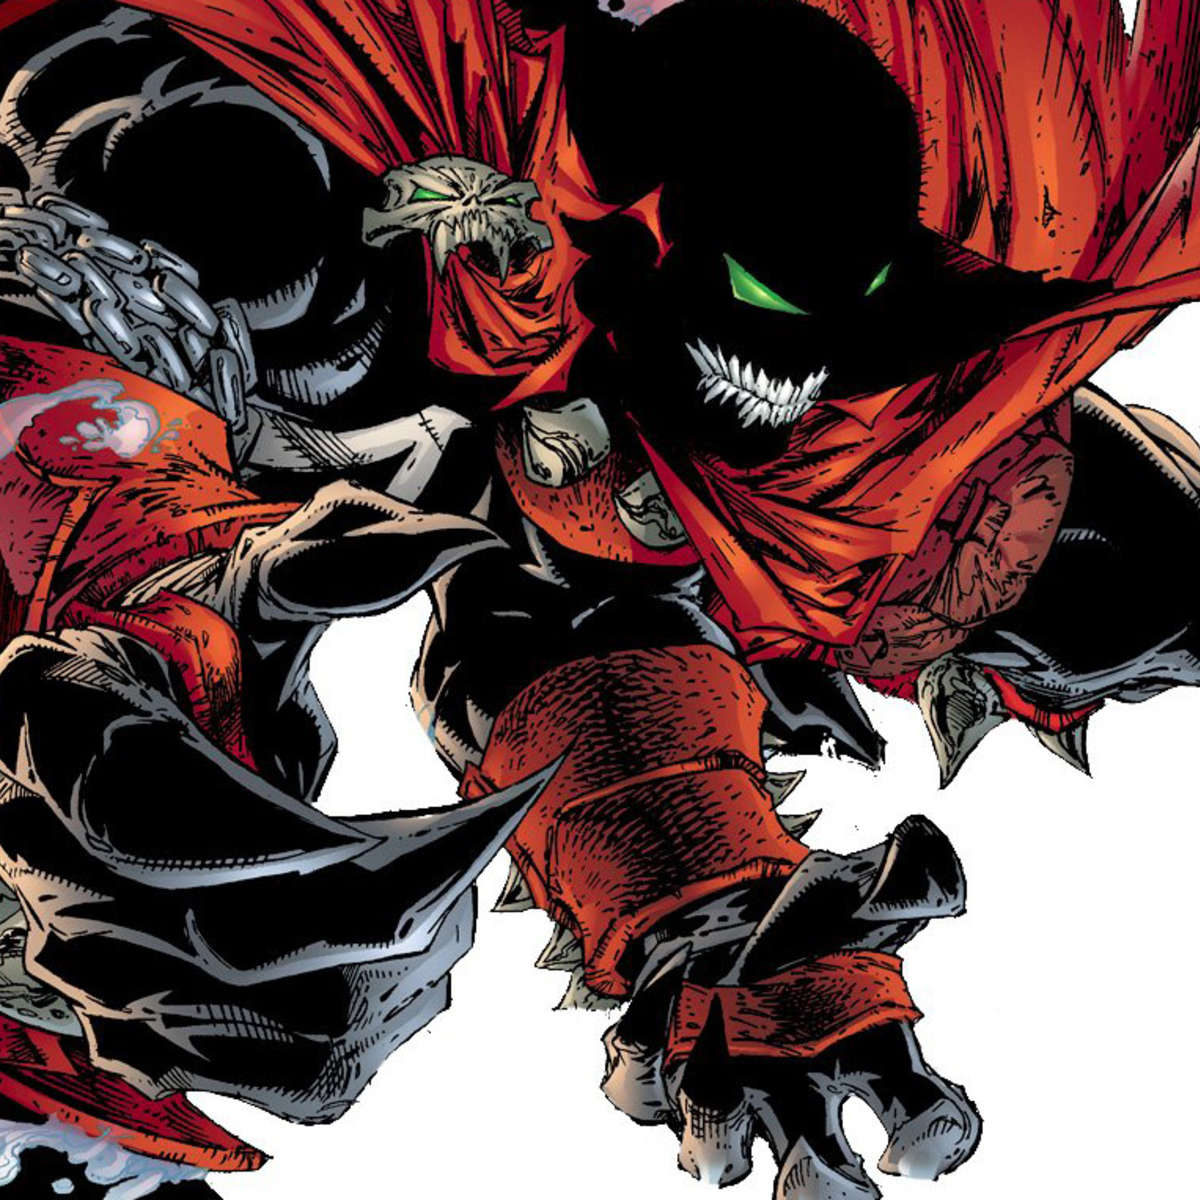 spawn-comic-page-banner.jpg